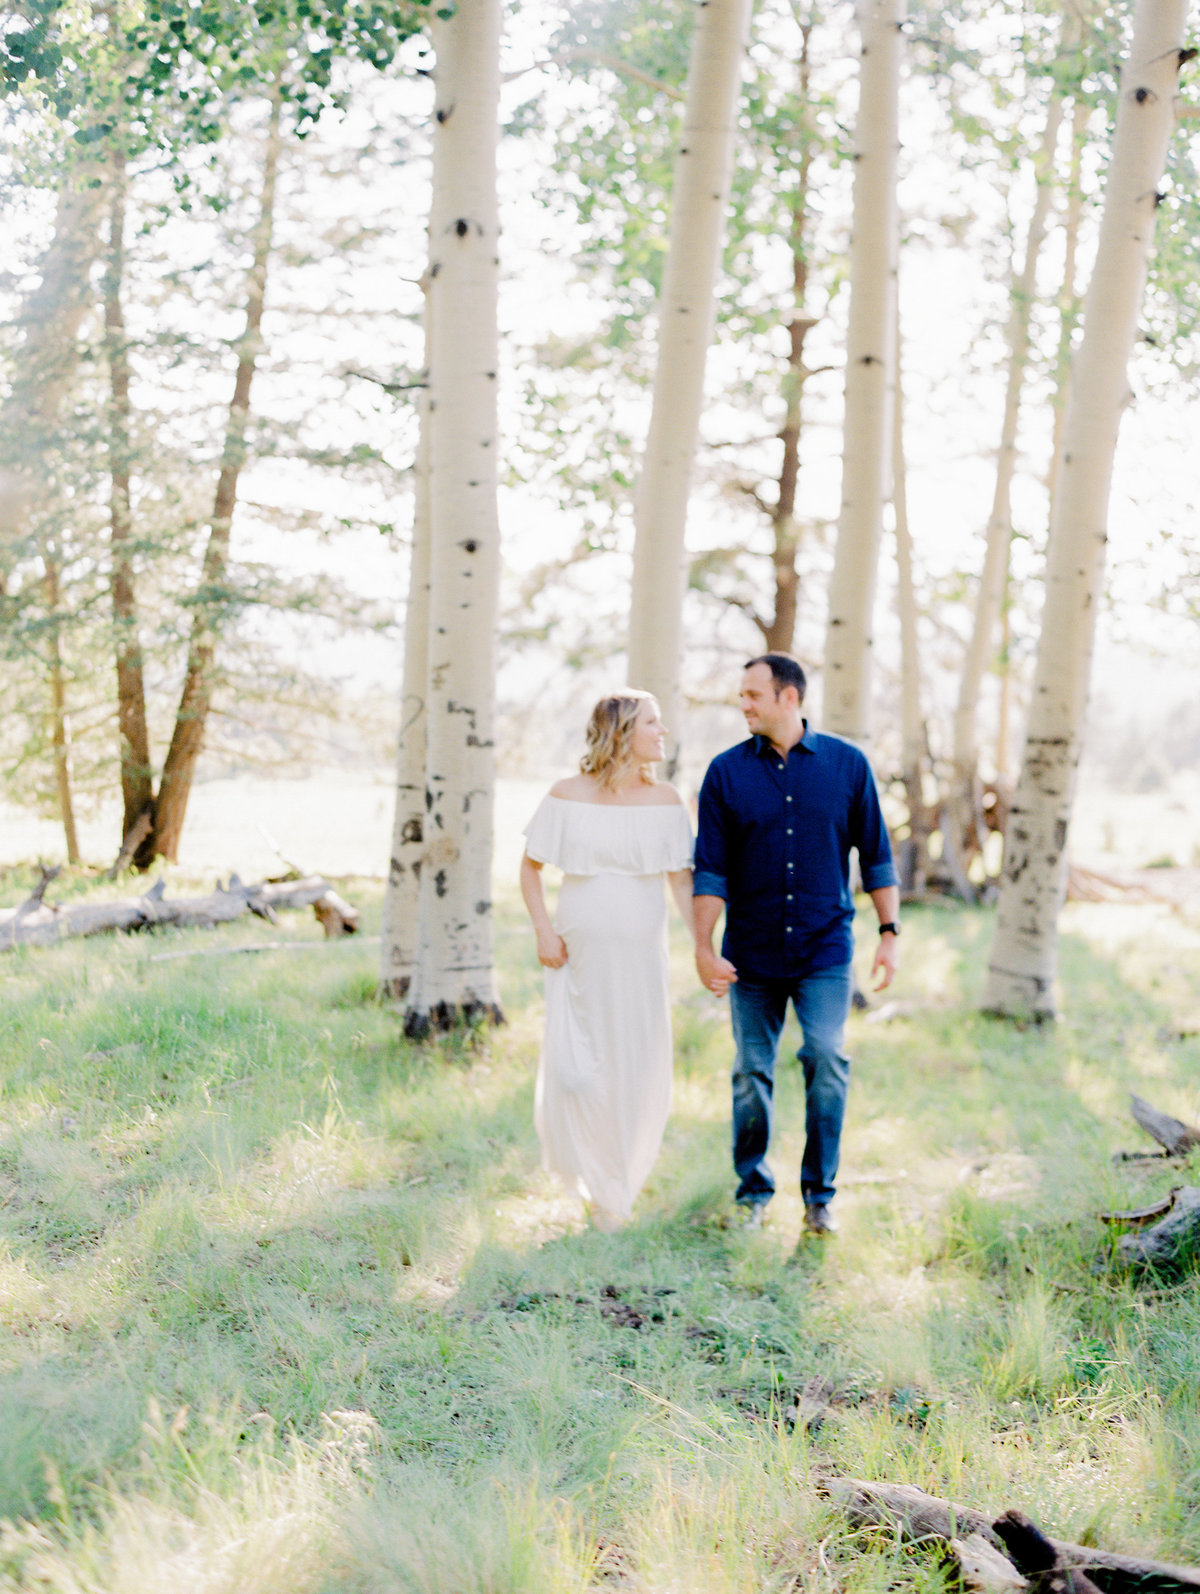 Arizona maternity Session by Ashley Rae Photography